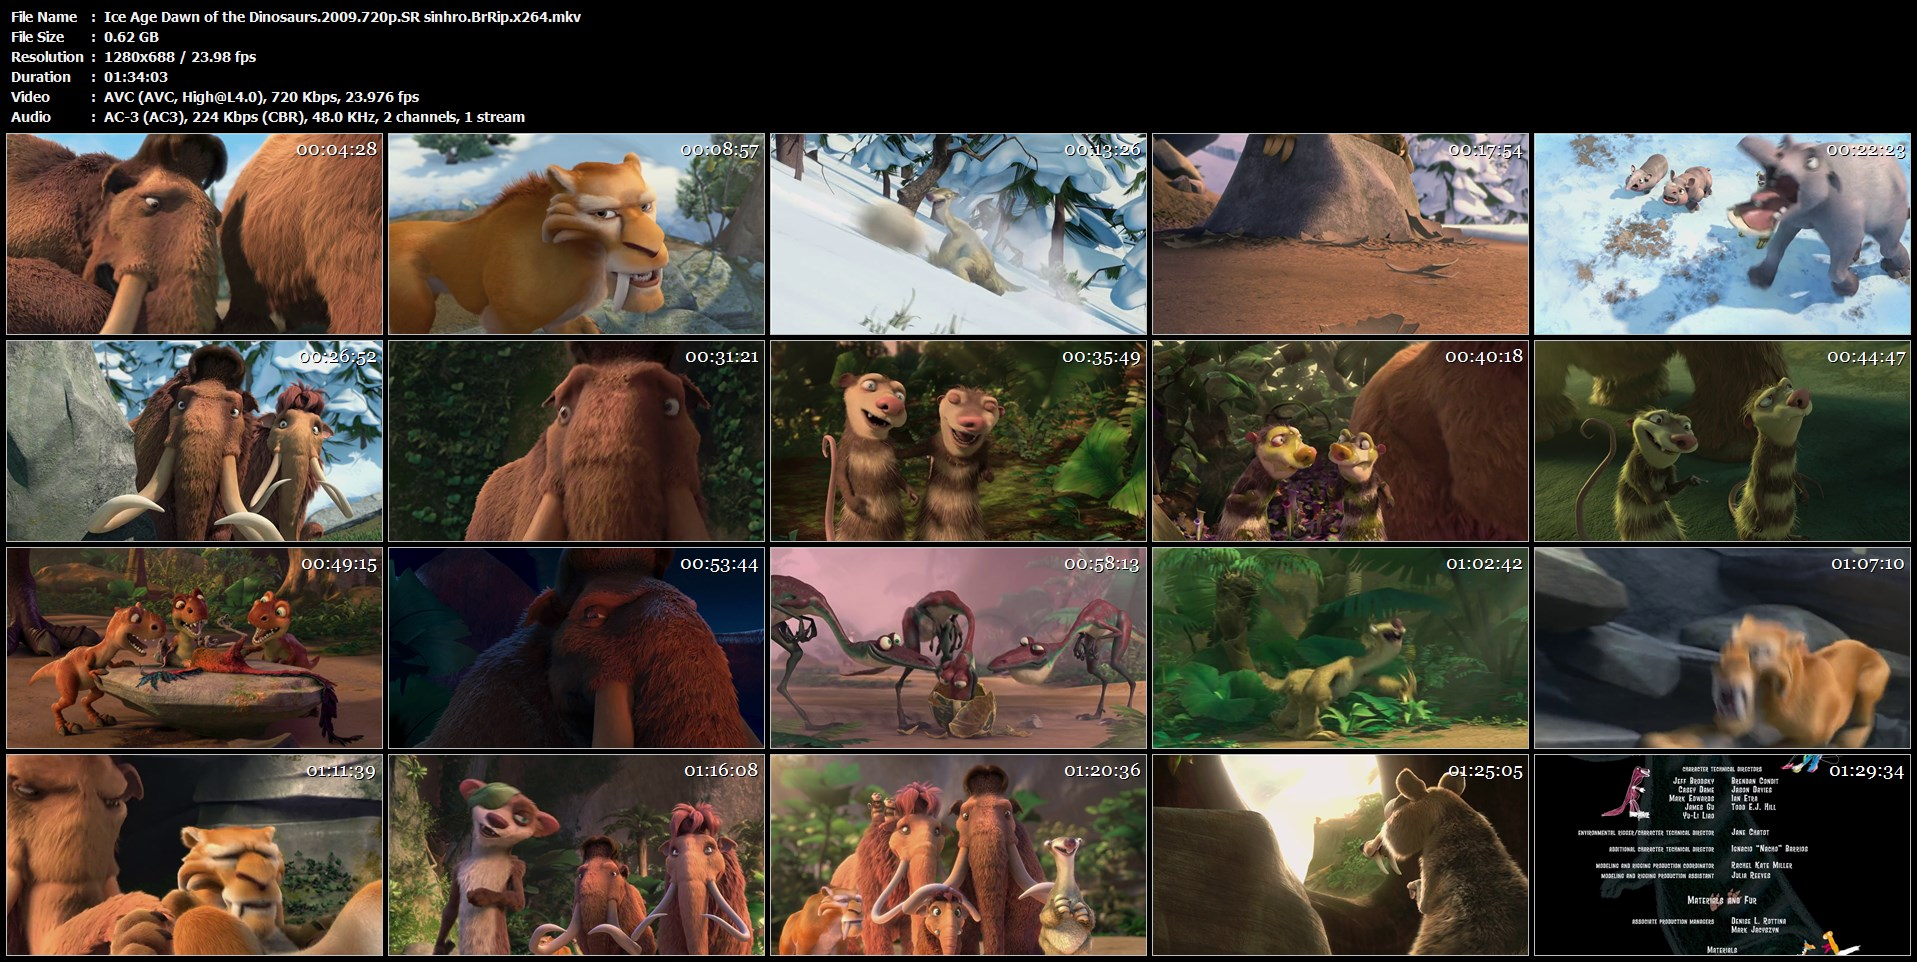 Ice_Age_Dawn_of_the_Dinosaurs2009720pSR_